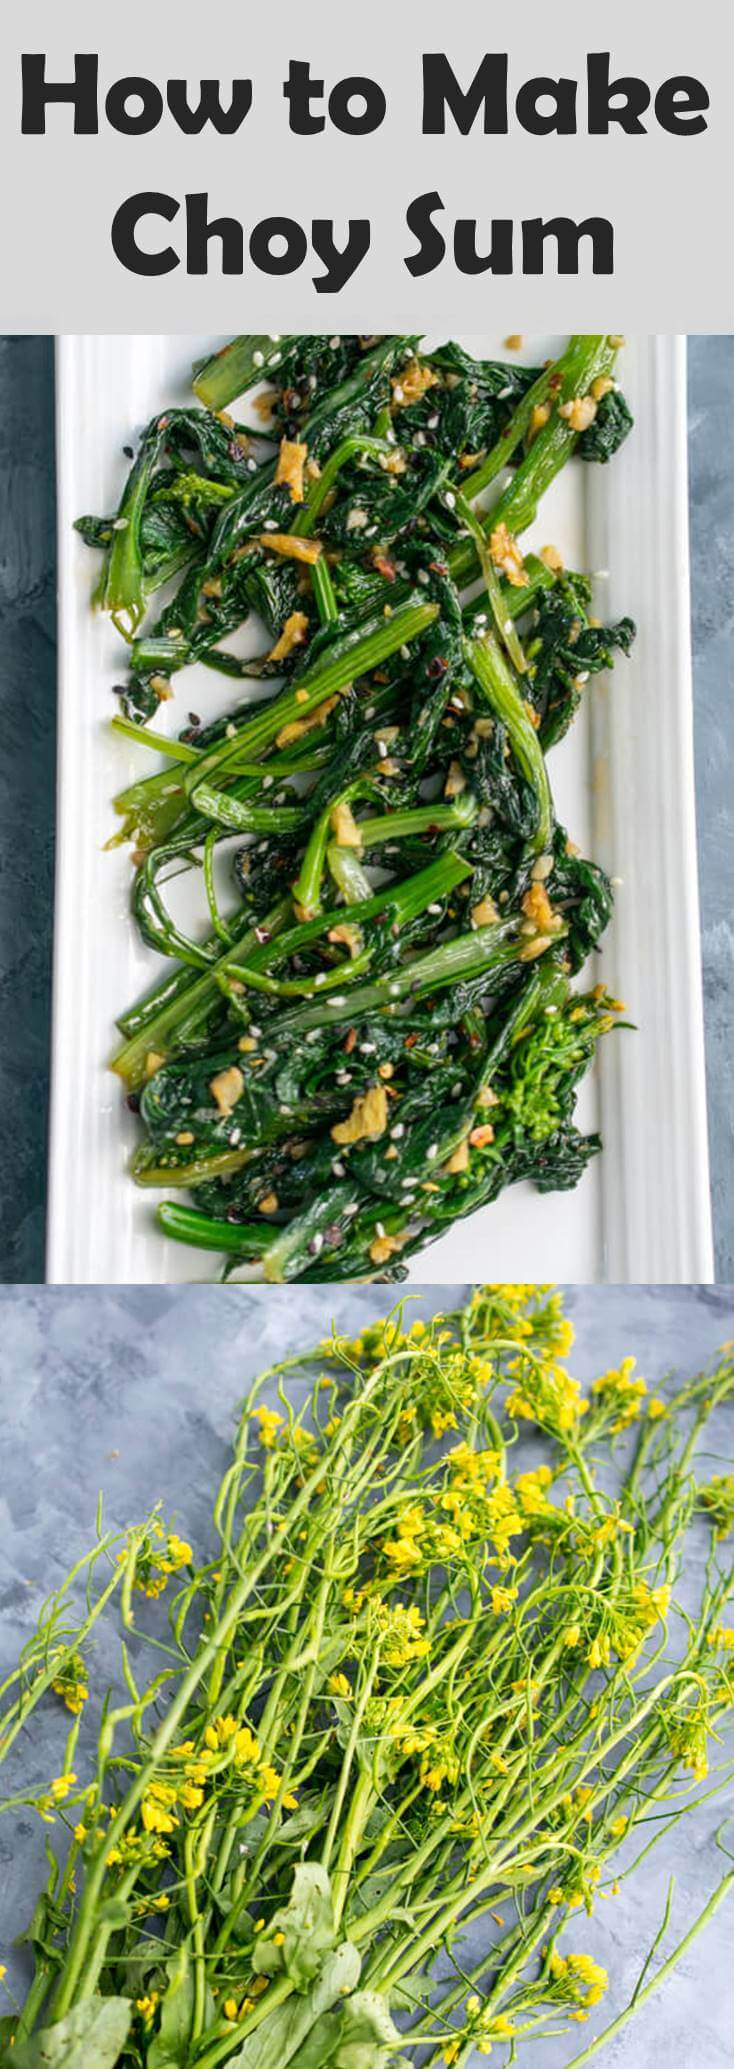 Chili Garlic Choy Sum Stir Fry: Learn how to prepare the leafy green Chinese flowering cabbage, also known as choy sum or gunsho, and an easy recipe for a vegetable side. Naturally vegan, gluten-free, paleo, nut-free.